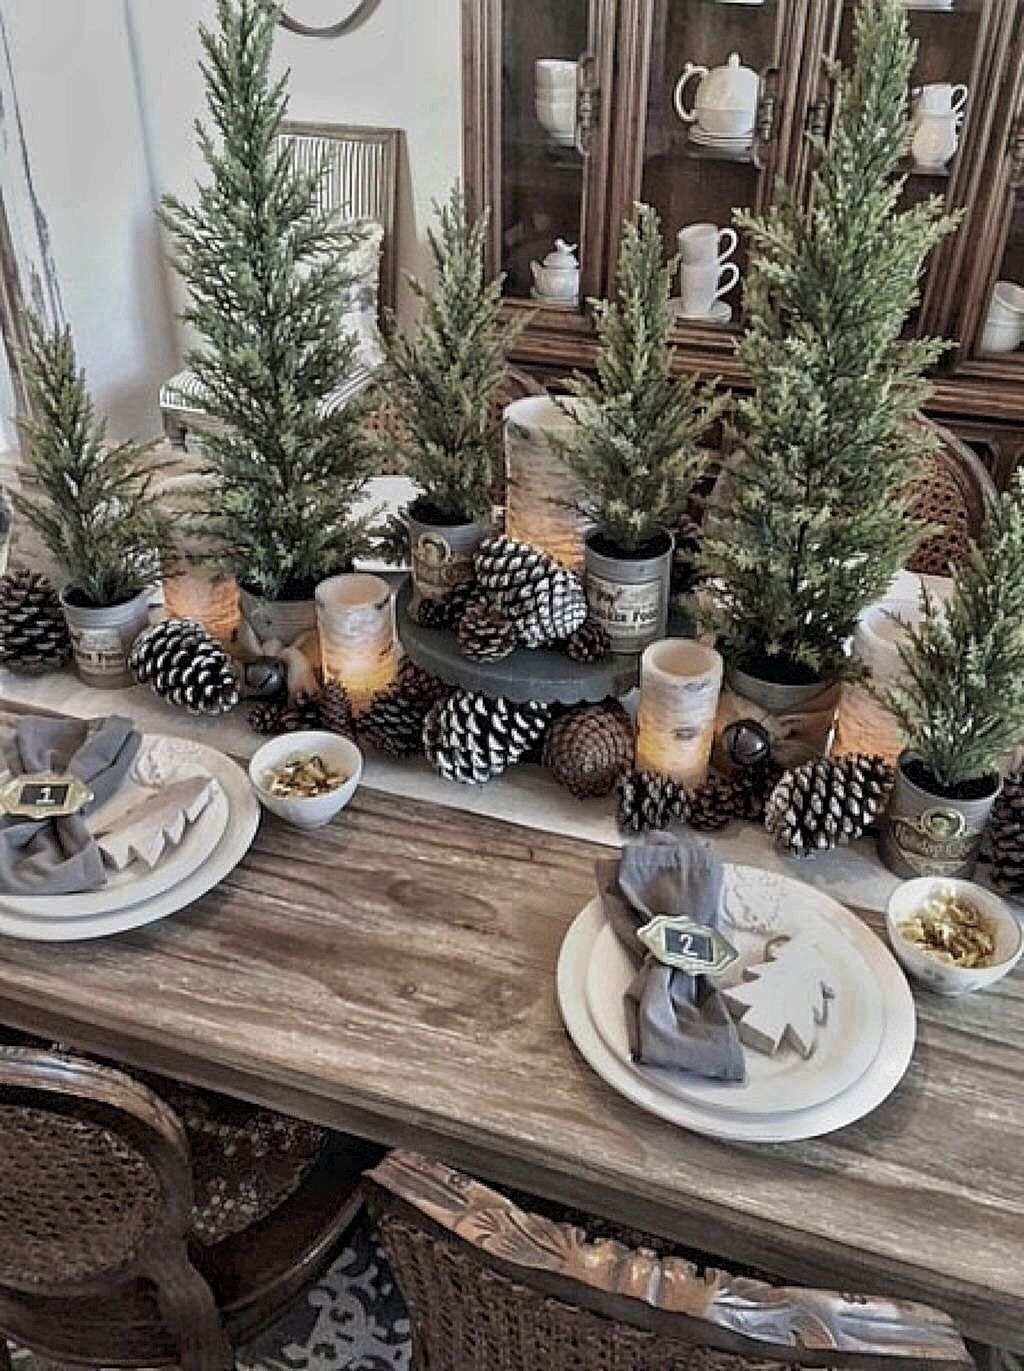 Pin By Karen Pangia On A White Christmas Christmas Table Decorations Christmas Dining Table Christmas Tablescapes